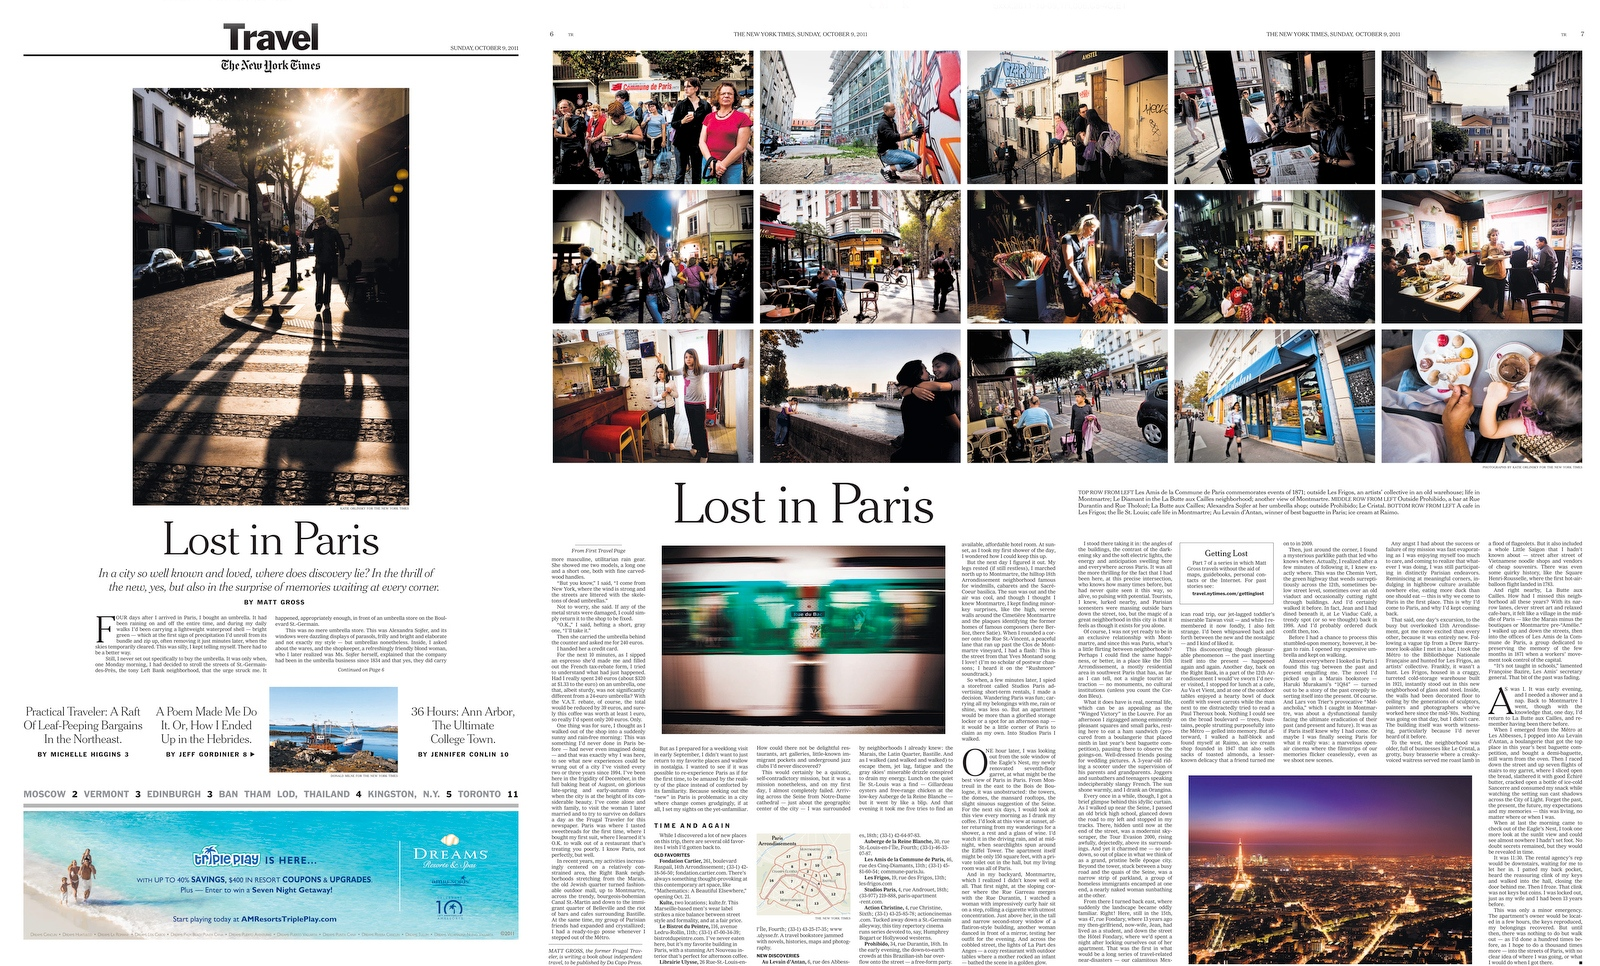 The New York Times Travel